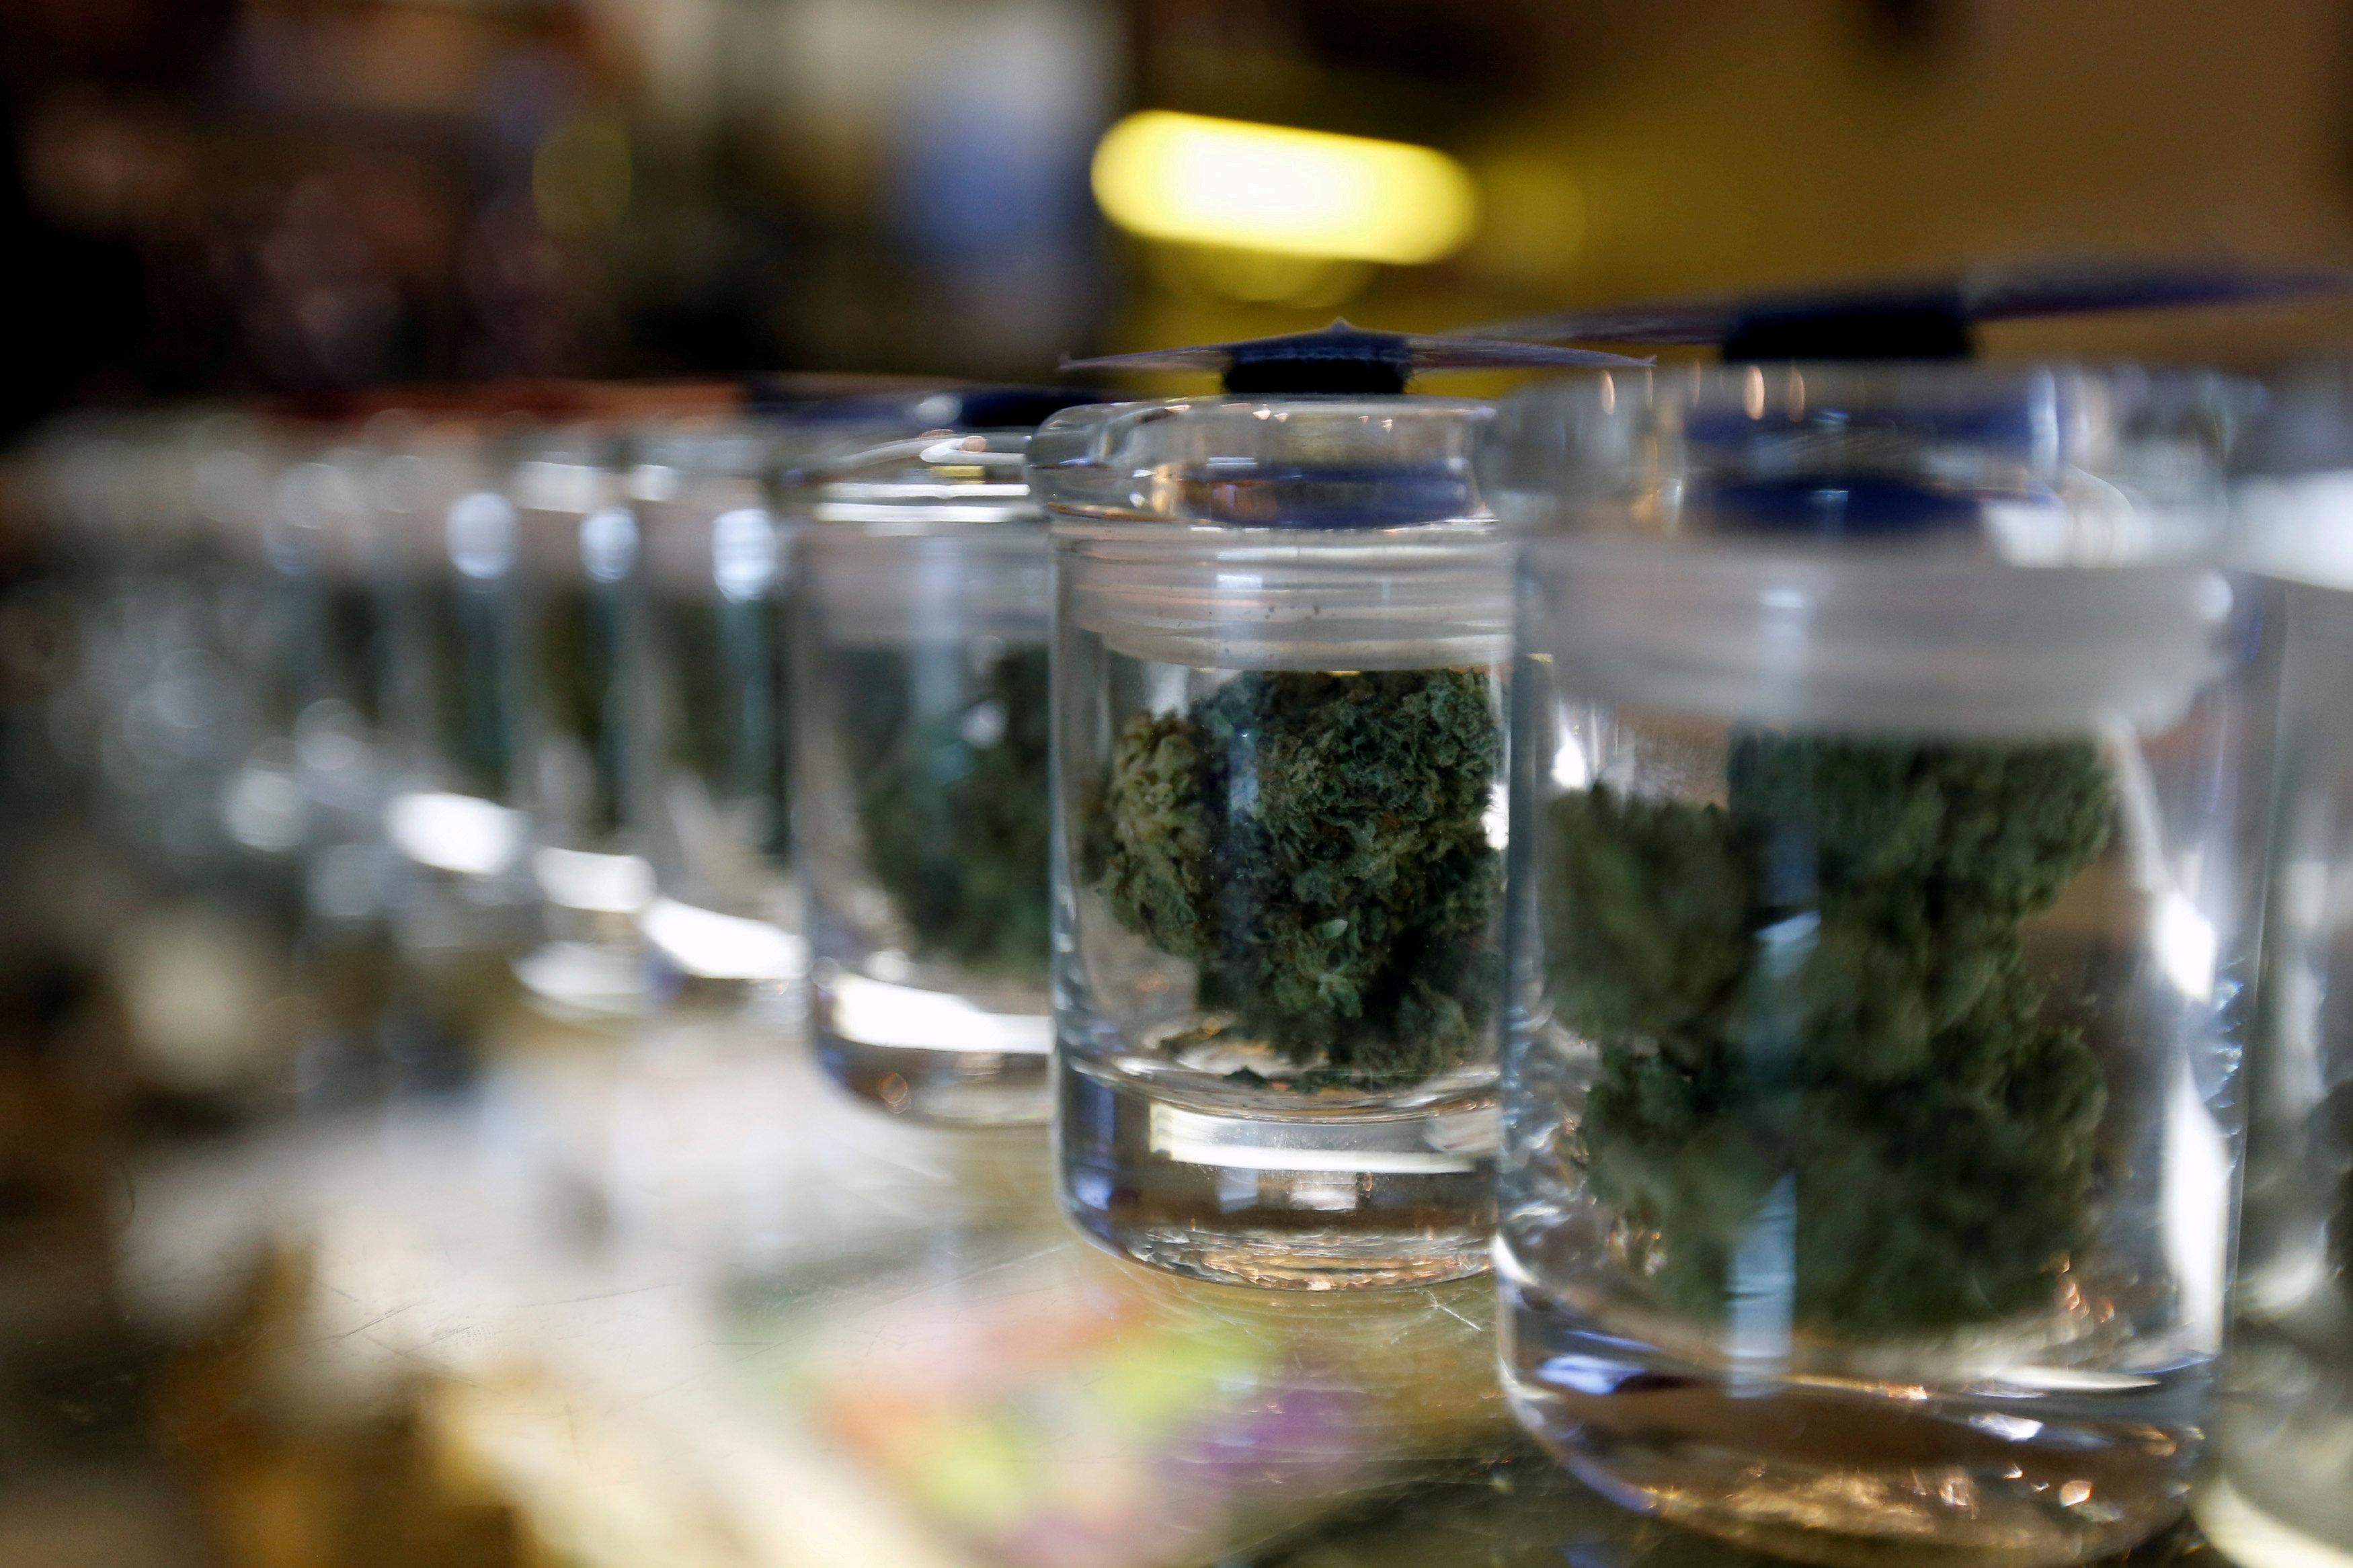 Sessions' role as U.S. attorney general unsettles legalized pot industry